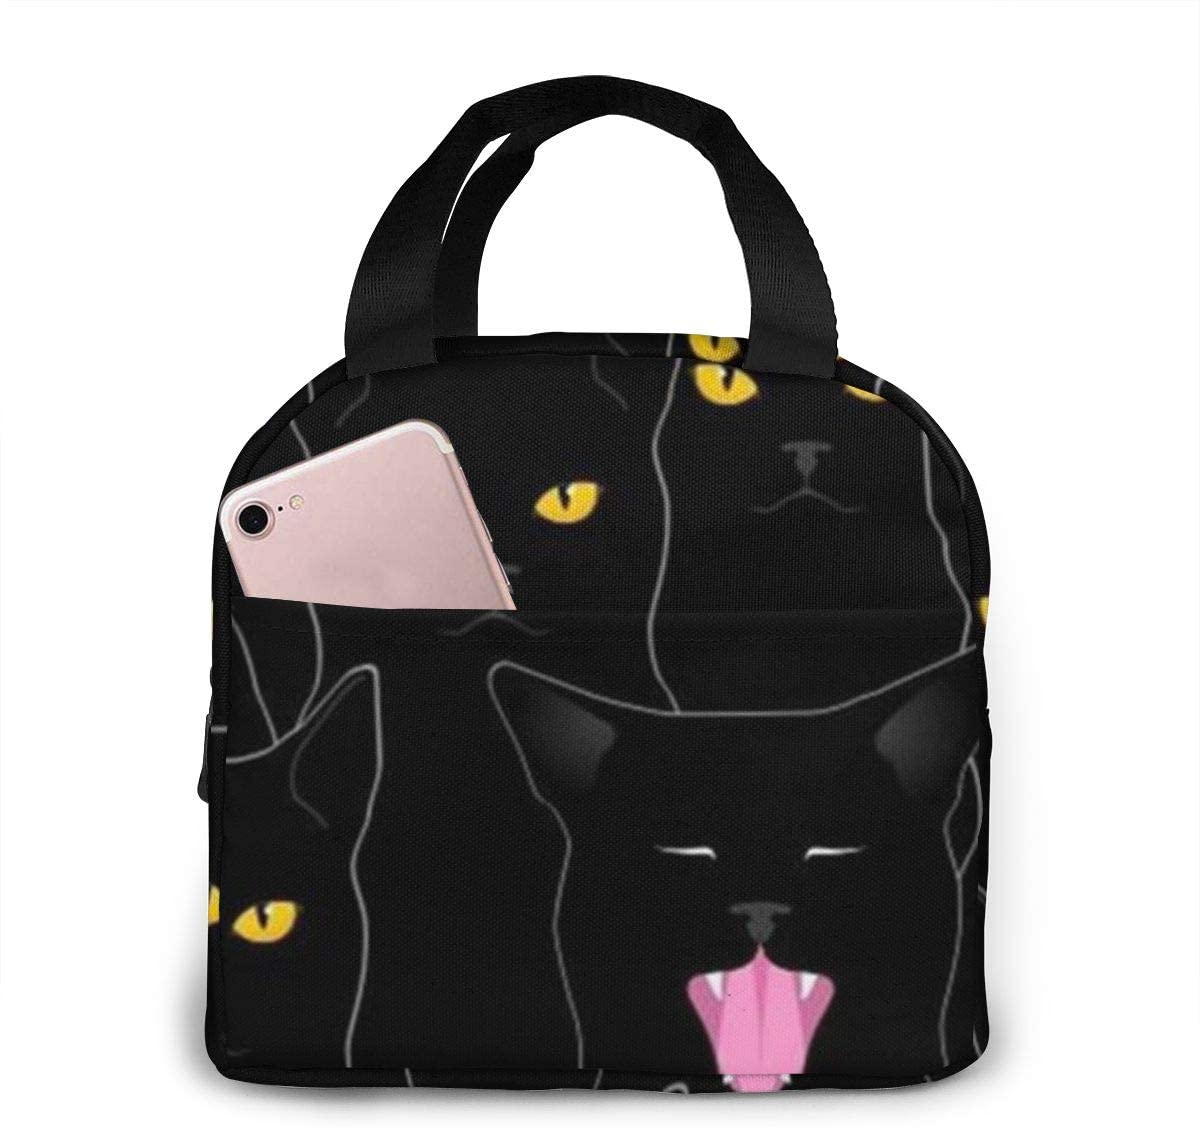 antspuent Black Cats Insulated Lunch Bag for Women/Men - Reusable Lunch Box for Office Work School Picnic Beach - Leakproof Cooler Tote Bag Freezable Lunch Bag for Kids/Adult